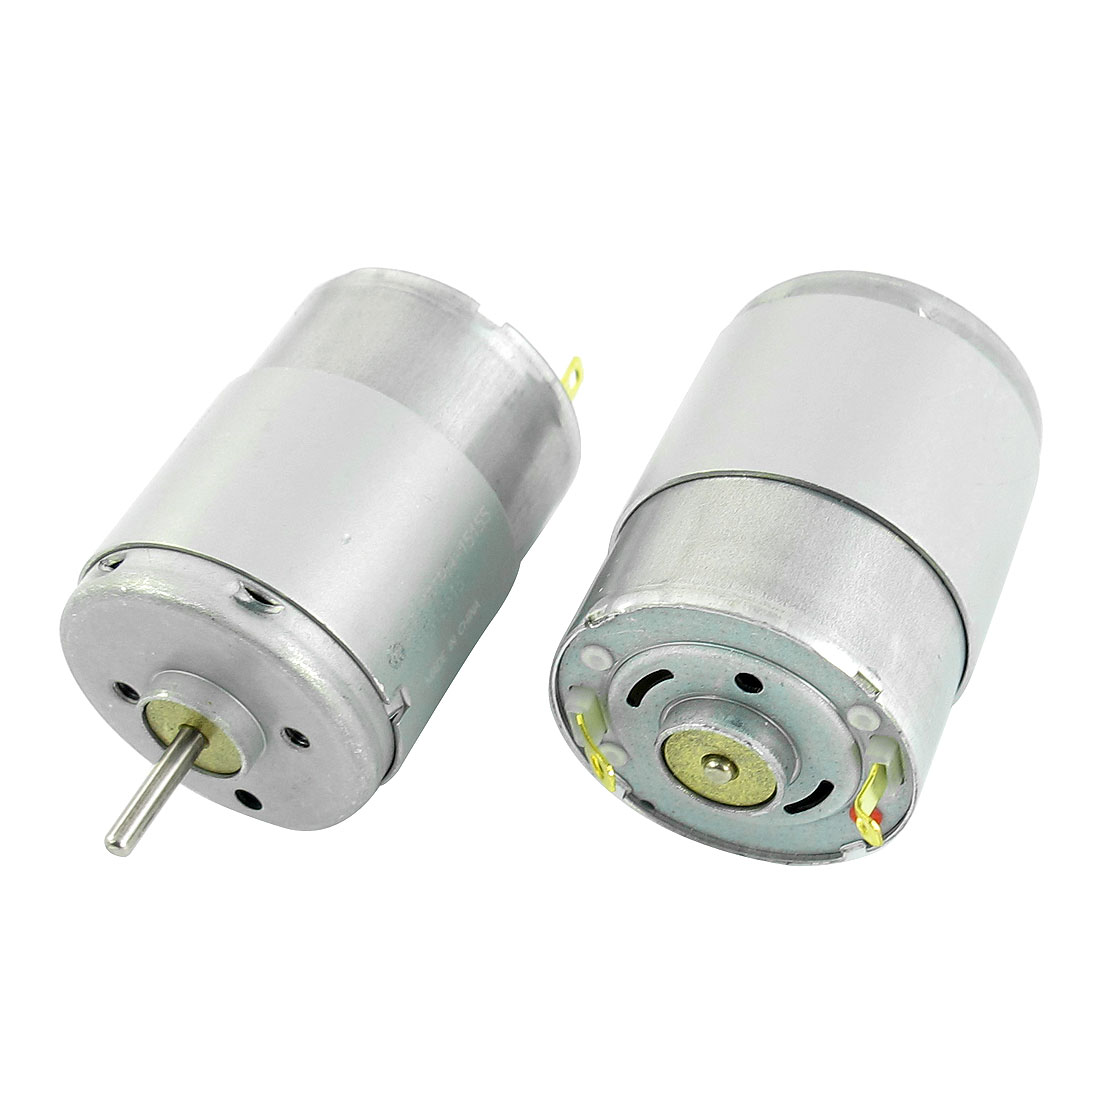 2Pcs RF-370 DC 12V 2mm Dia Shaft 9000 r/min Rotary Speed Output Cylinder Shaped High Torque Electric Motor